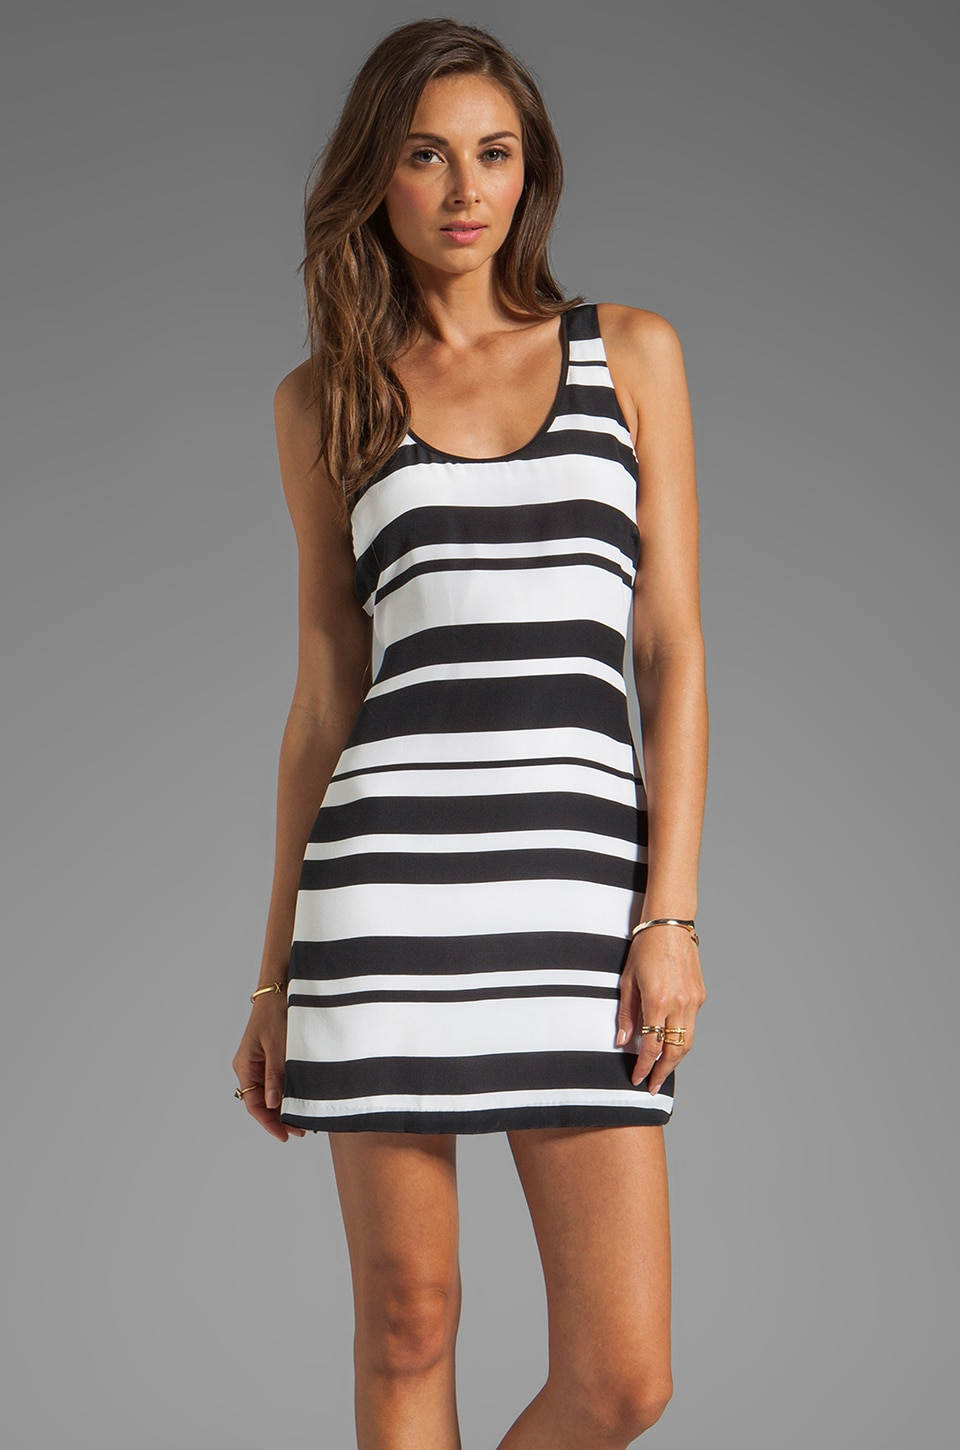 Central Park West Tahiti Striped Tank in Black/White